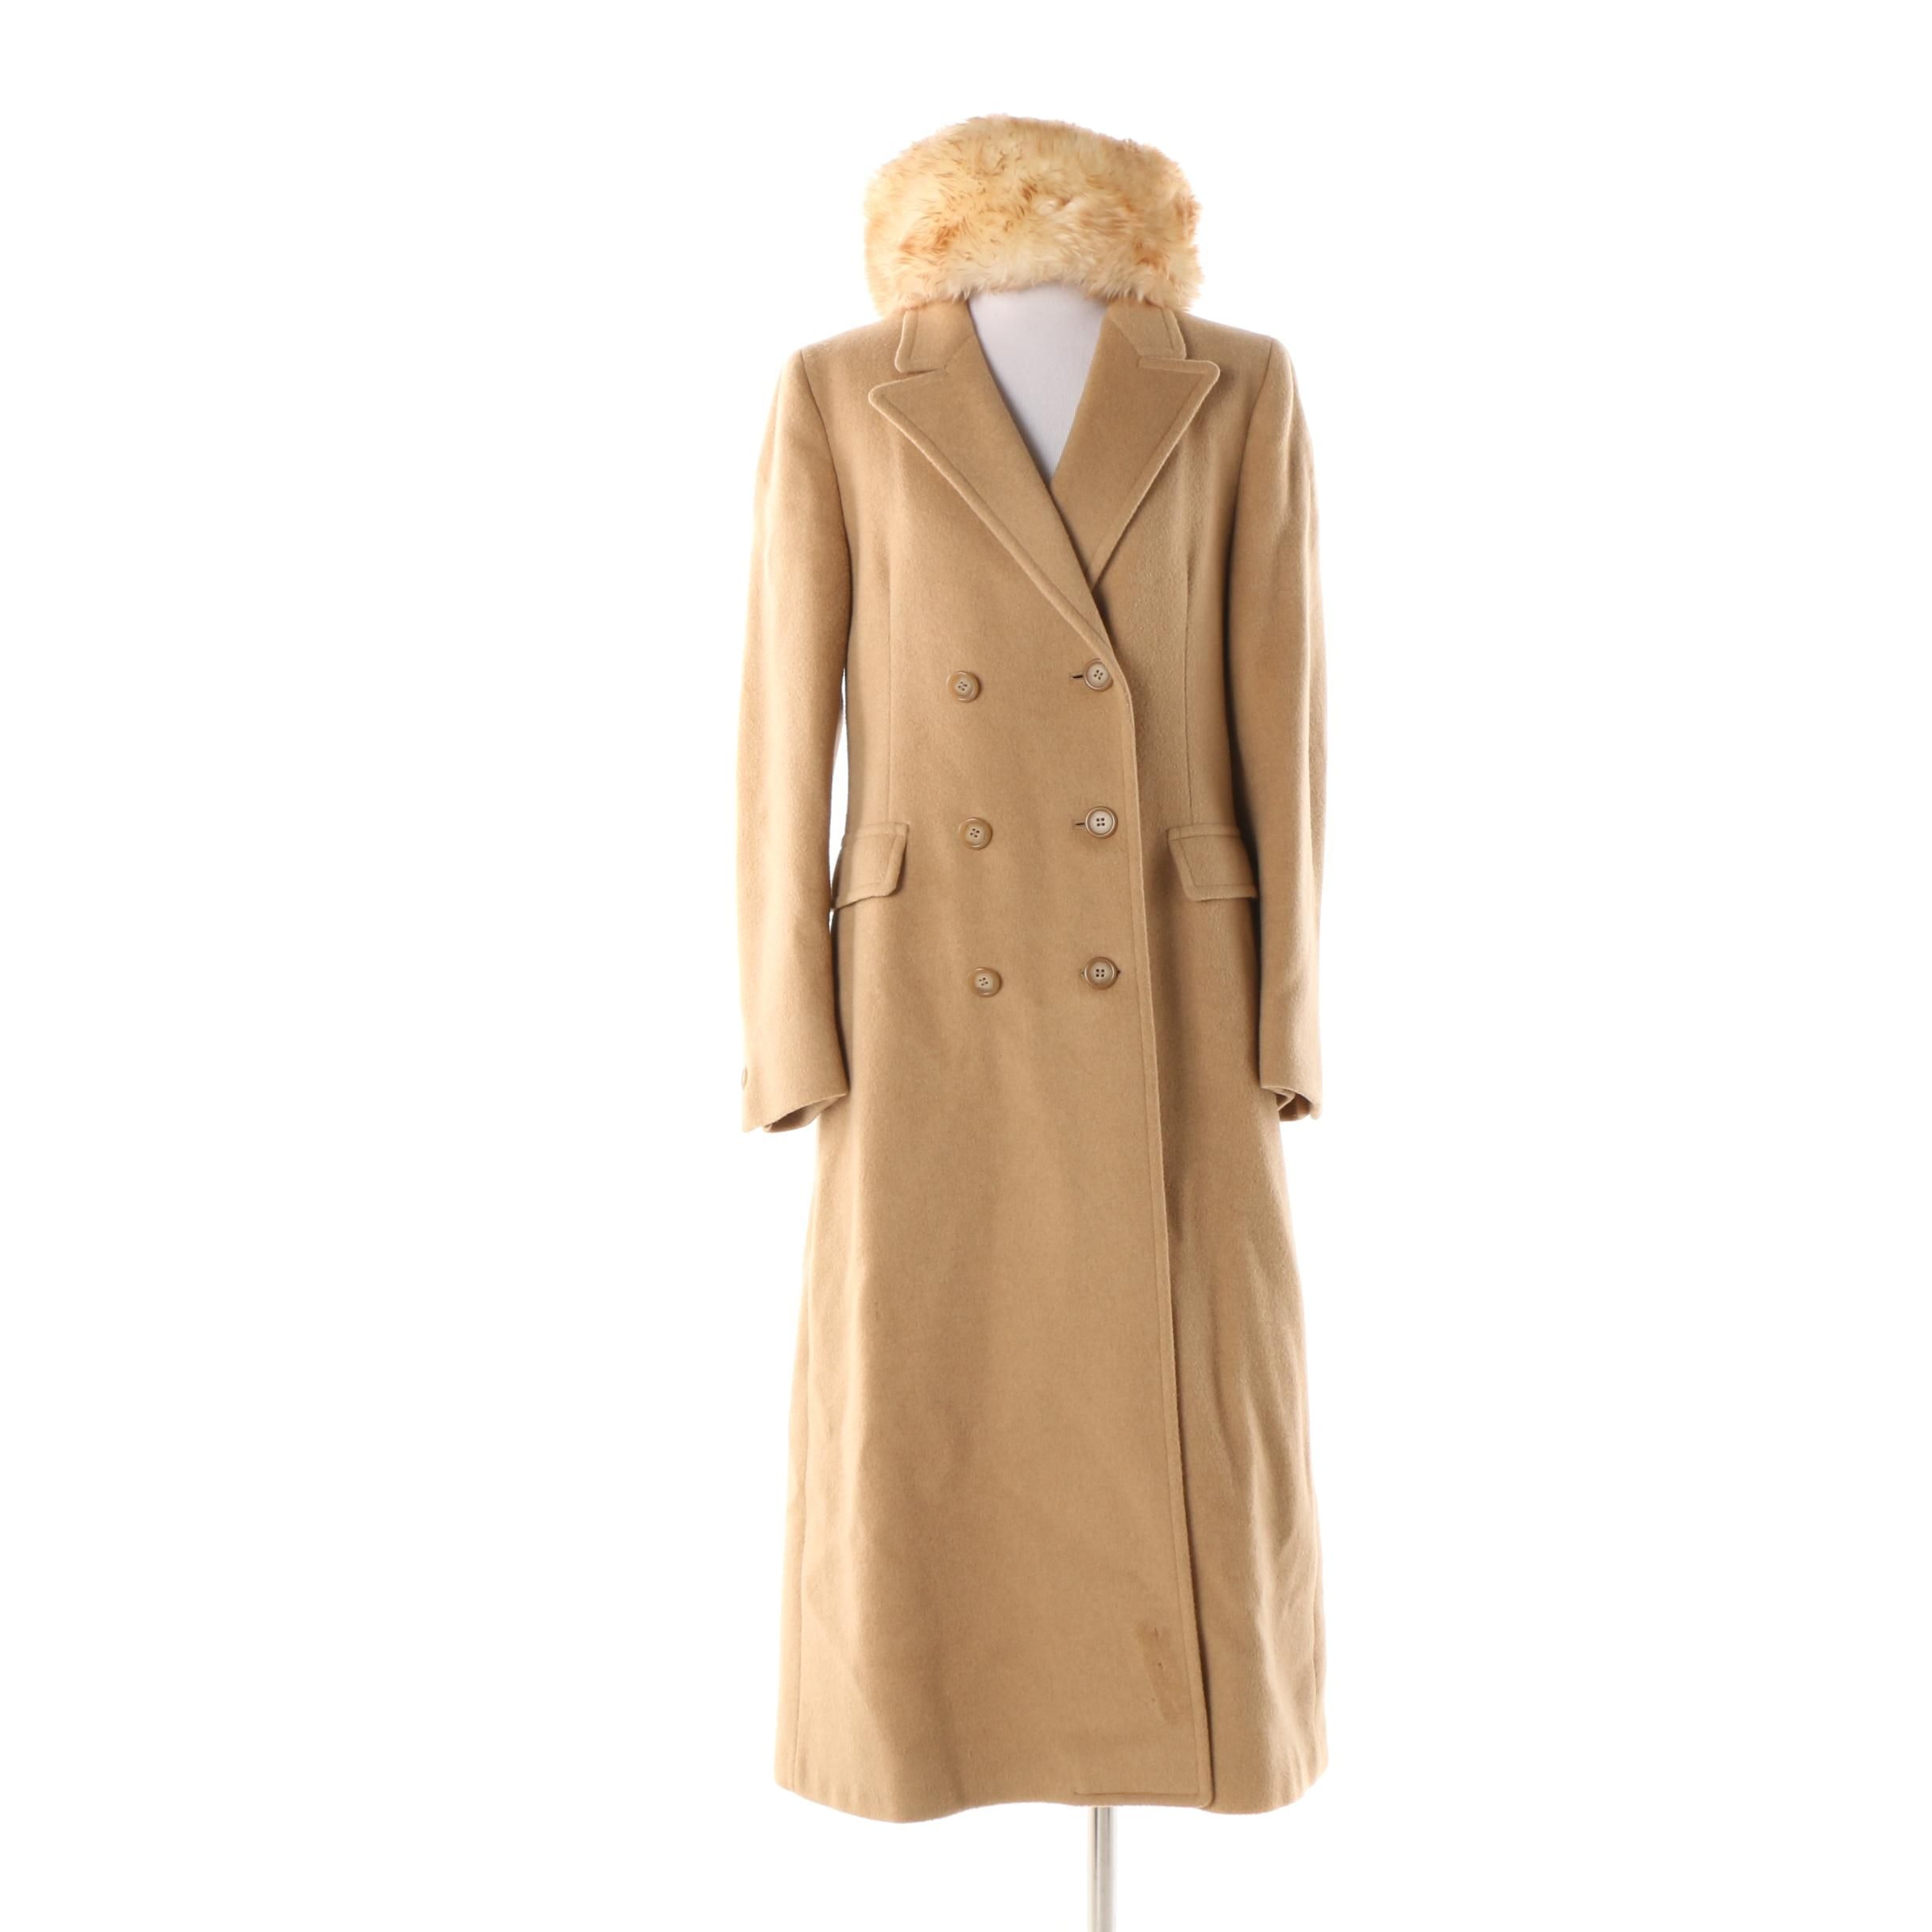 Women's Brooks Brothers Double-Breasted Wool Coat with Italian Lamb Fur Hat